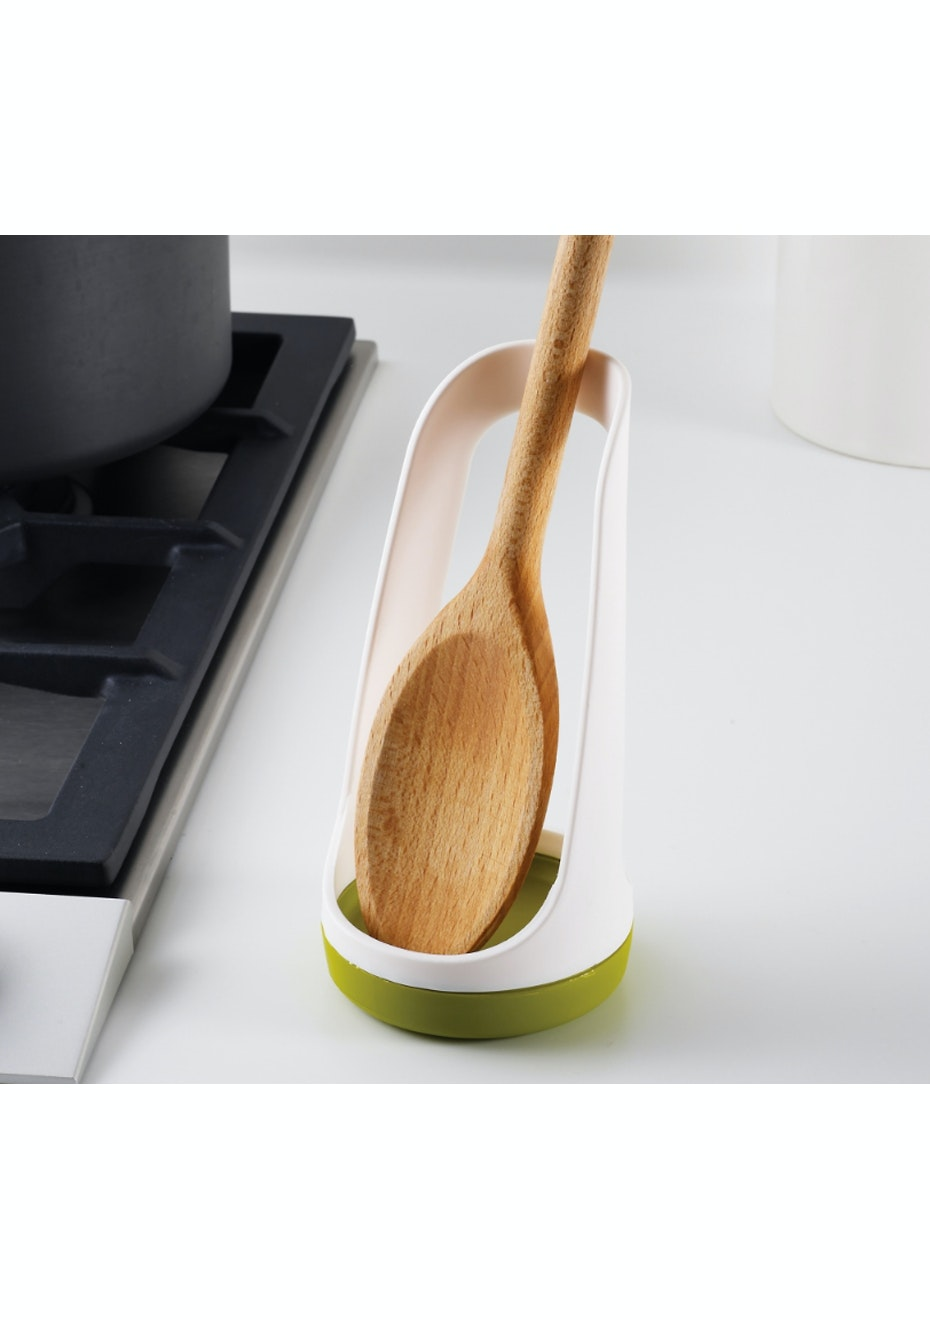 Joseph Joseph - SpoonBase Vertical Spoon Base